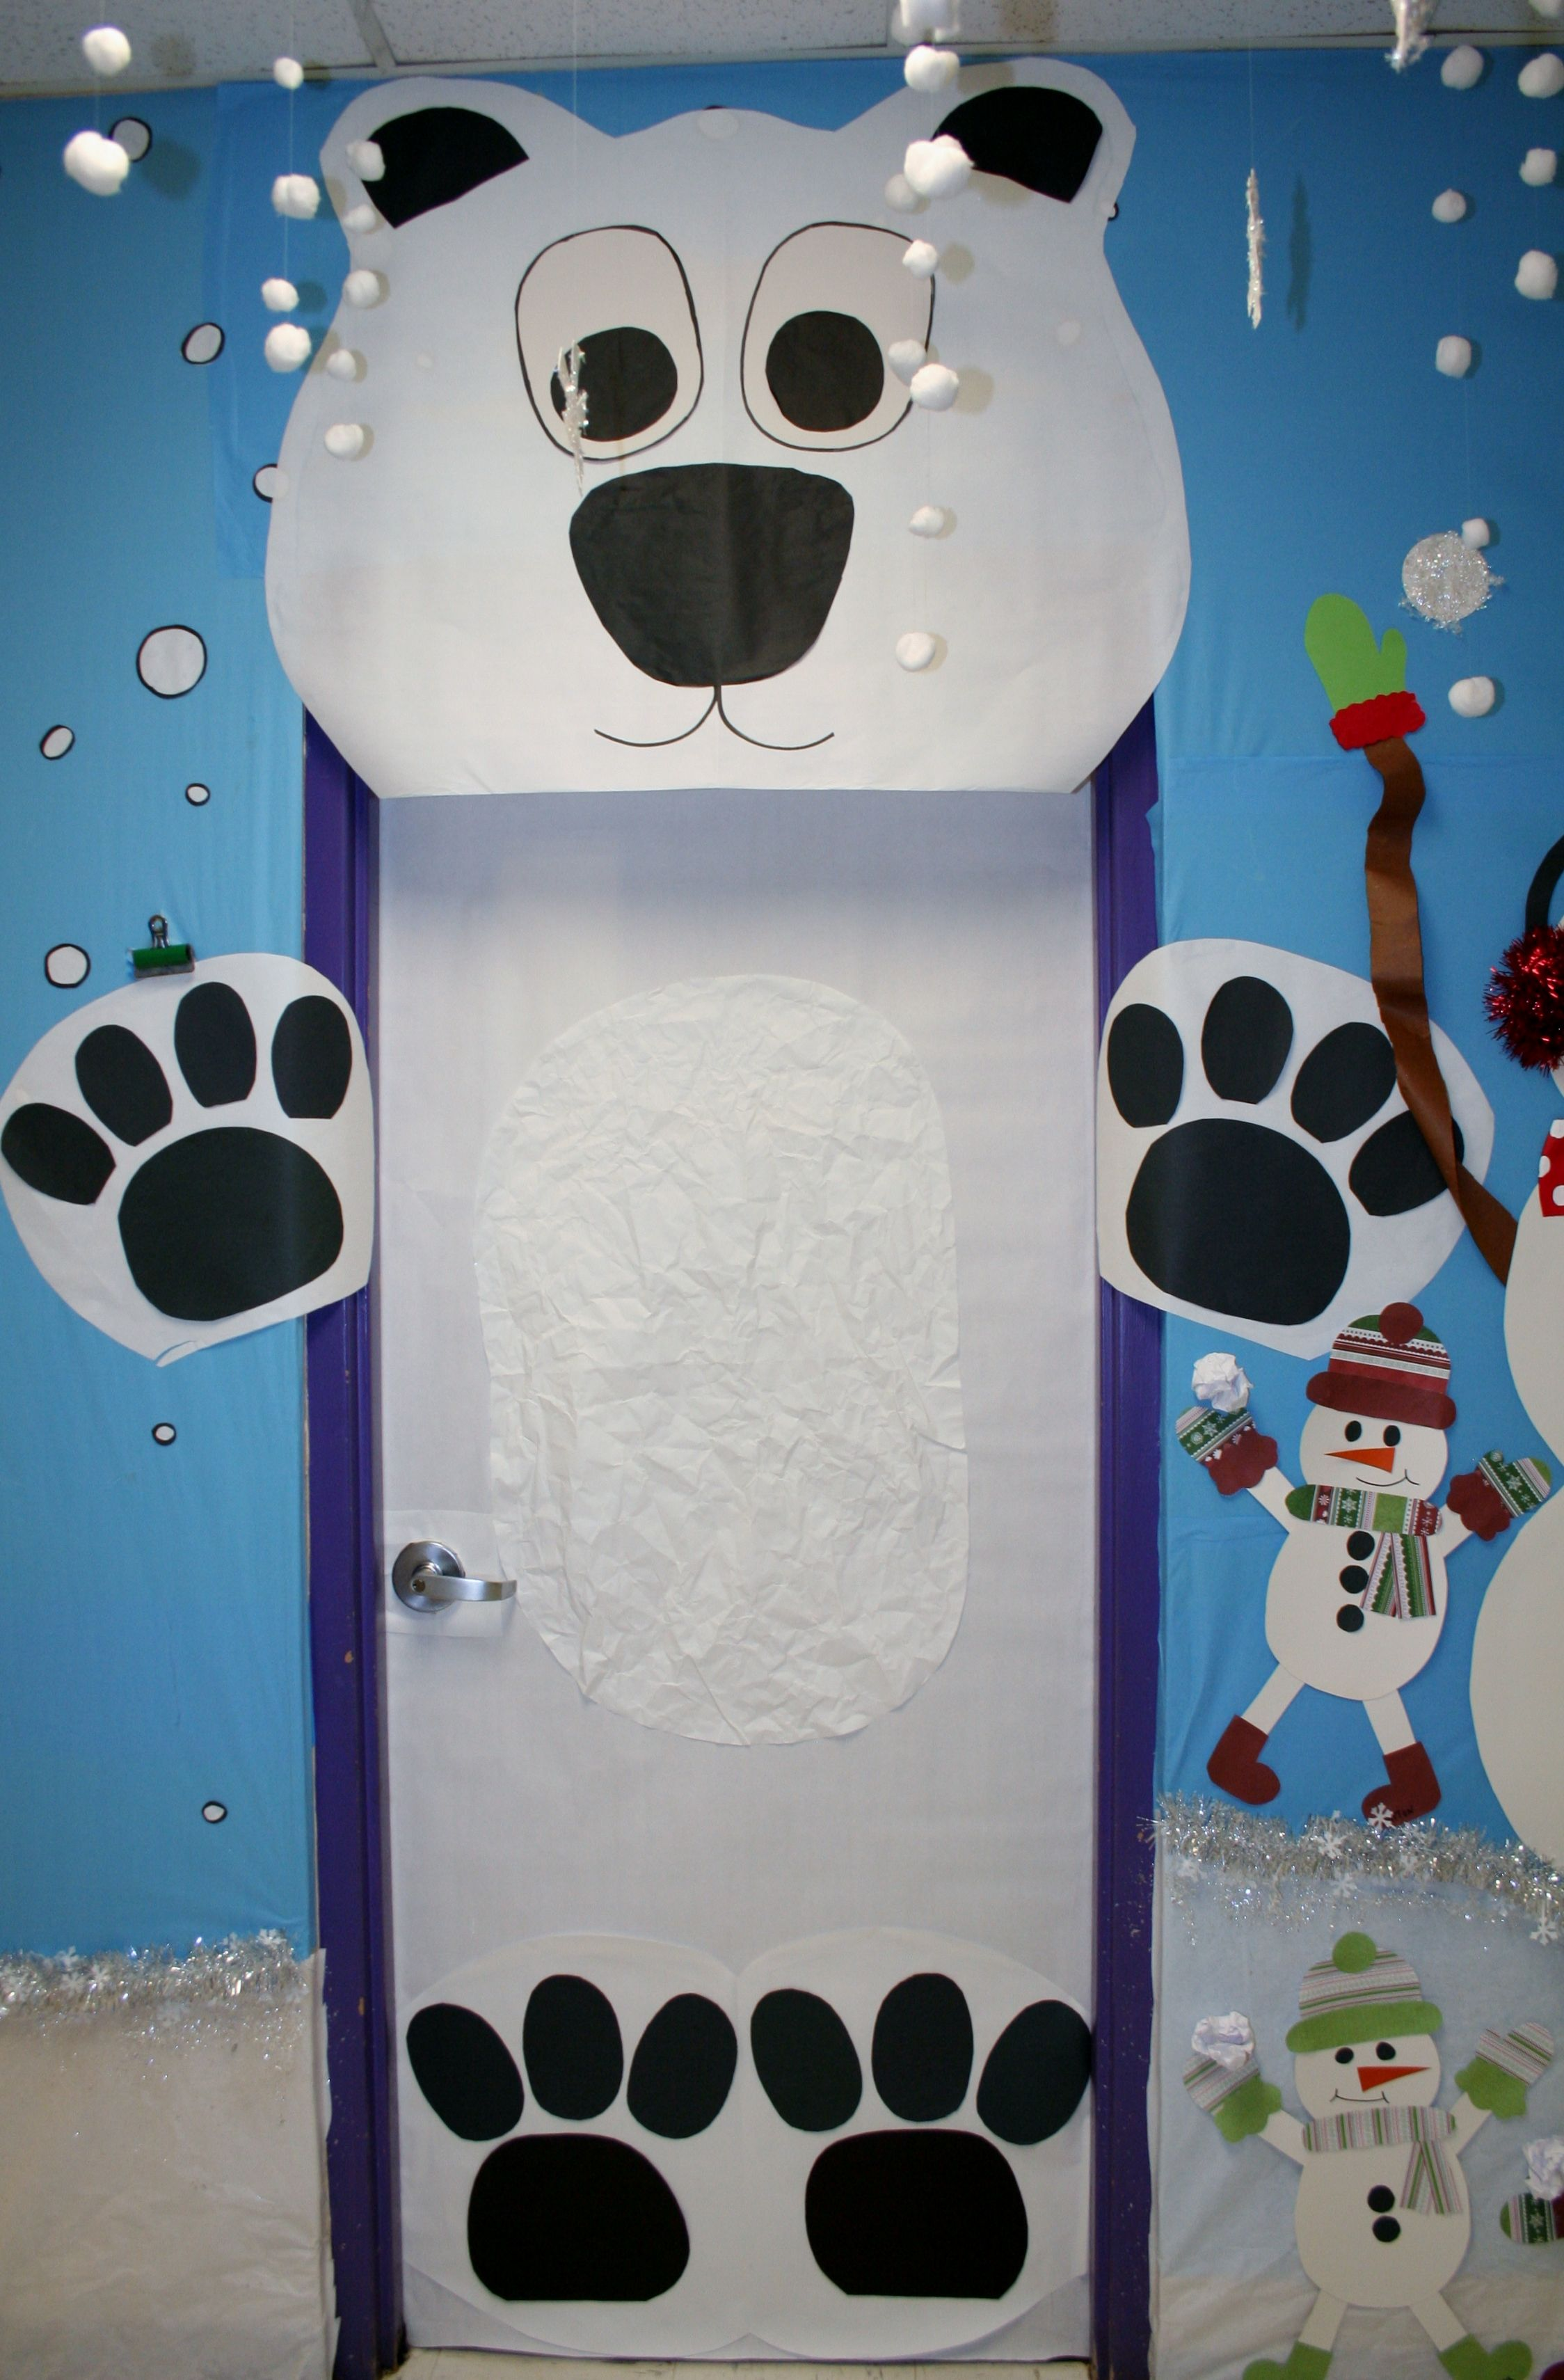 January classroom door decoration ideas - Classroom Polar Bear Door Decoration